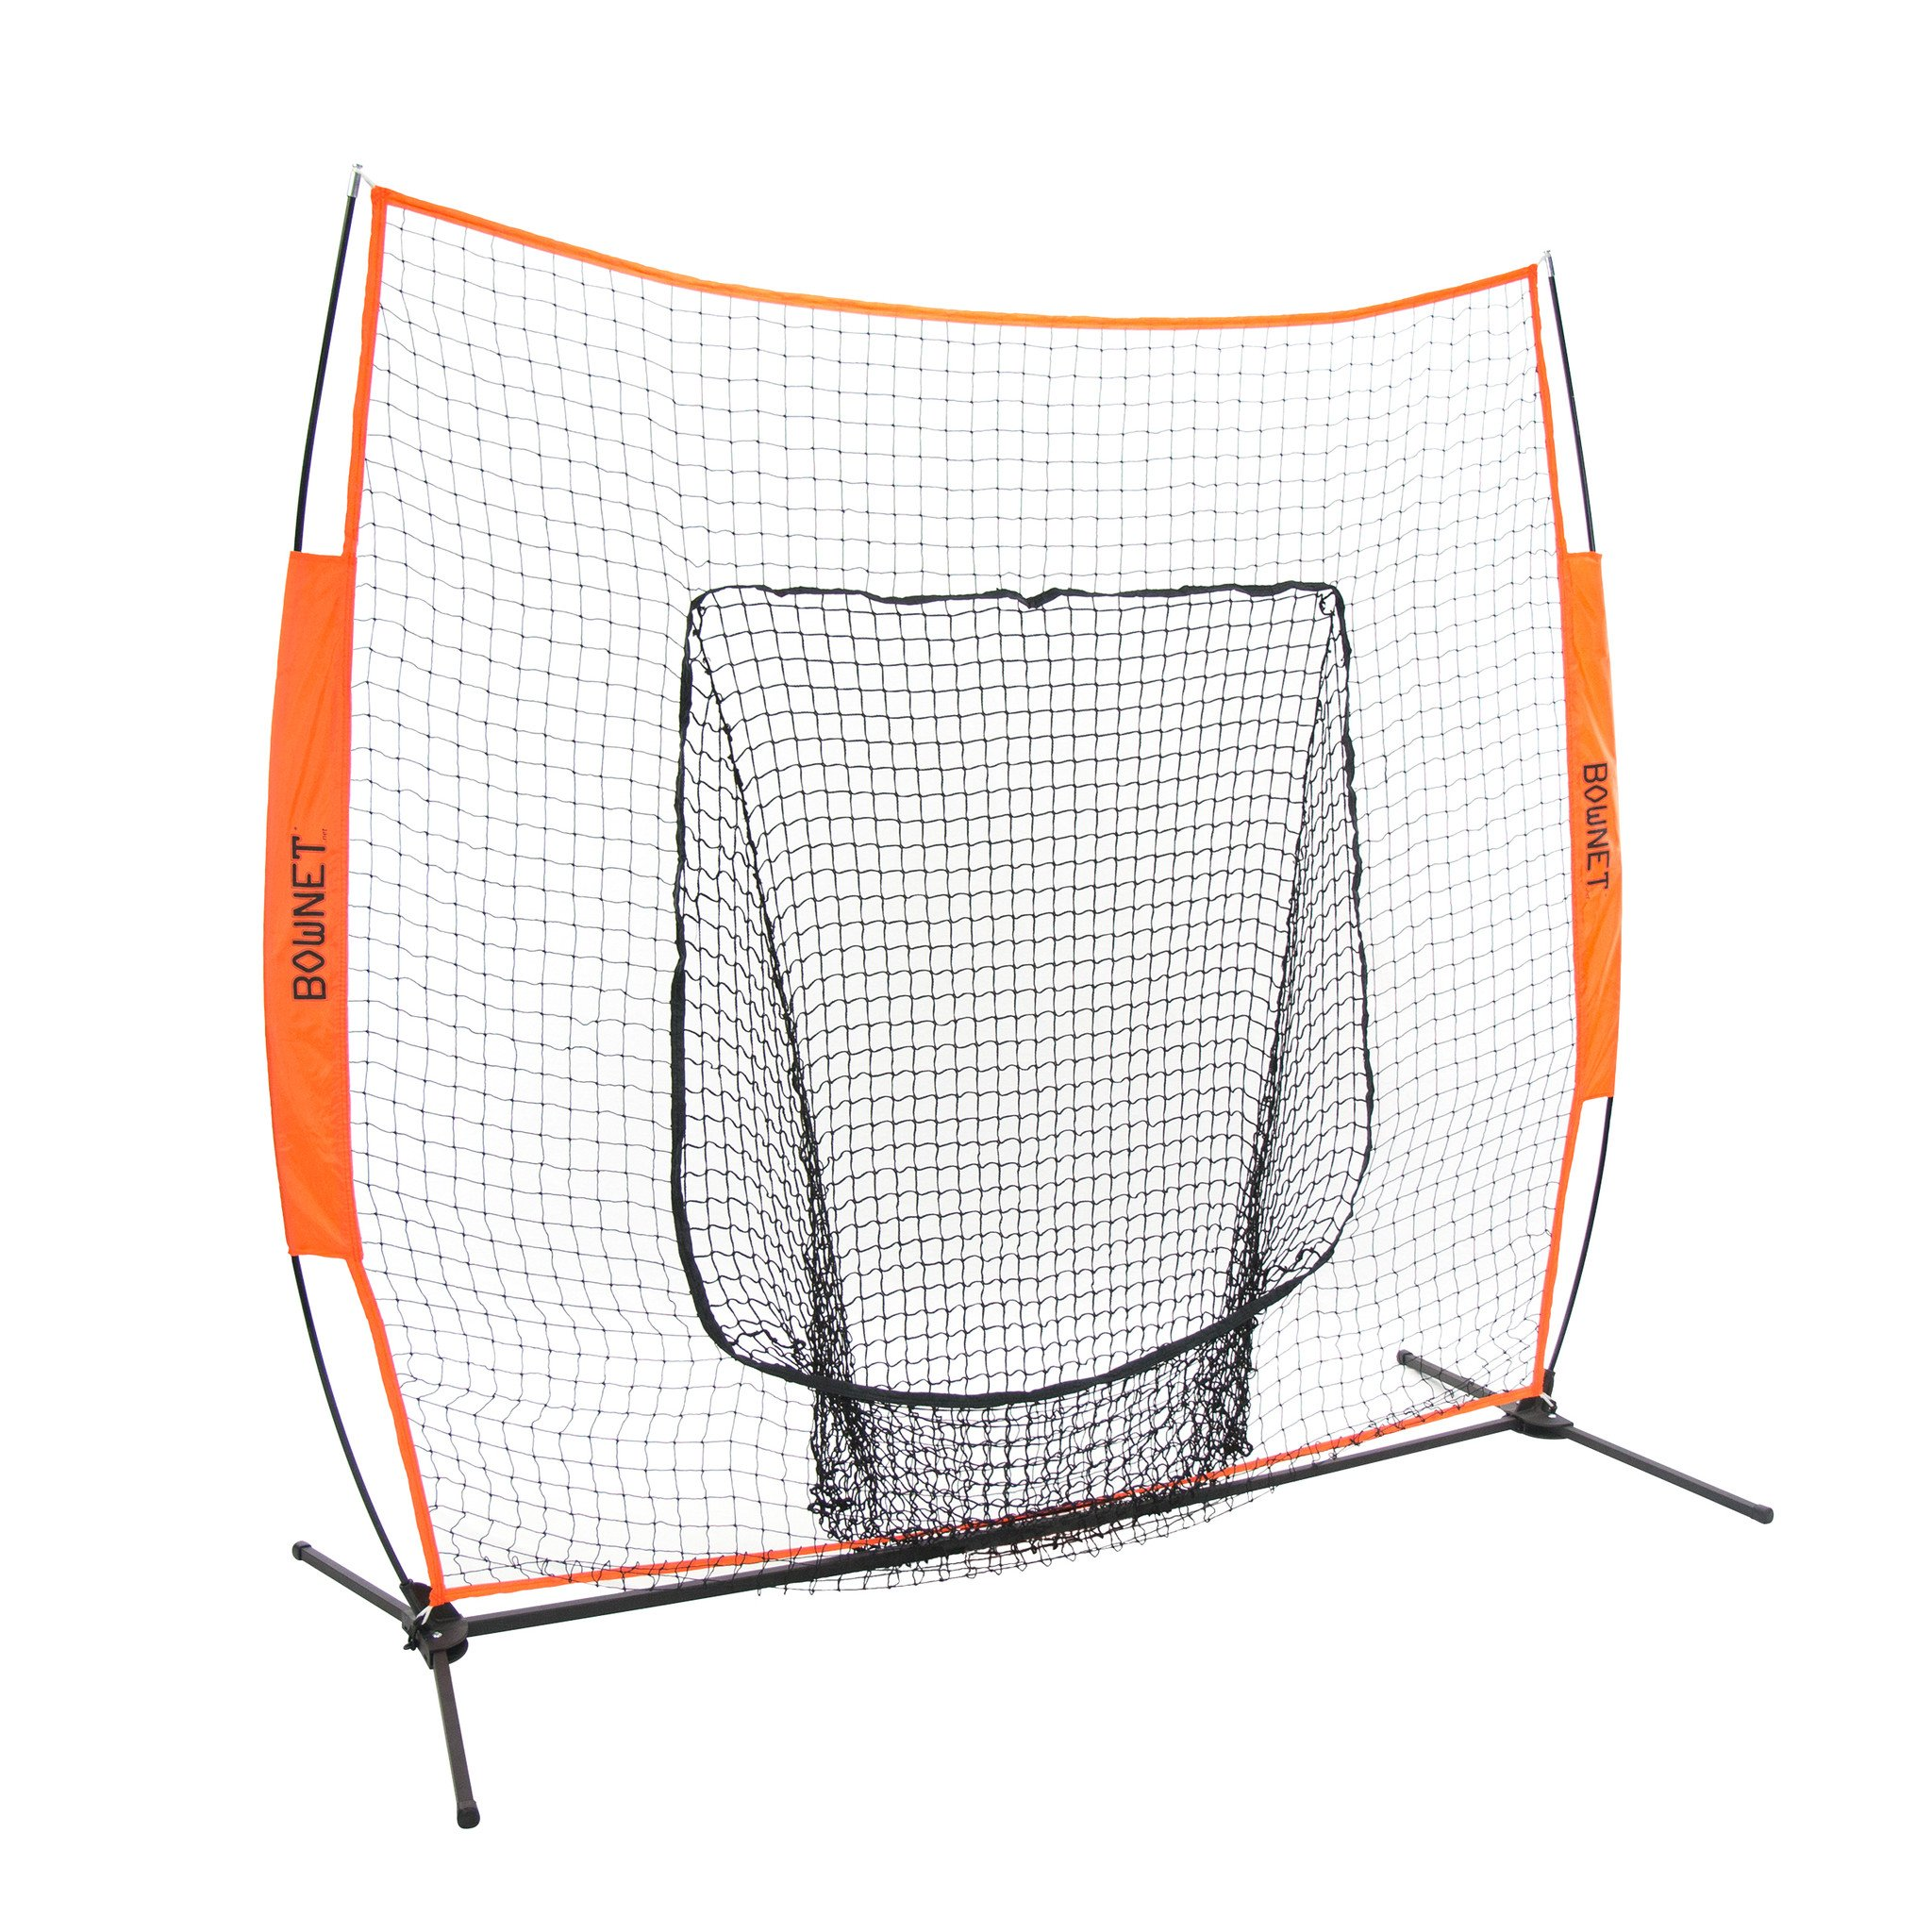 Bownet 7' x 7' Big Mouth X - Original and Most Reliable Baseball / Softball Training Net